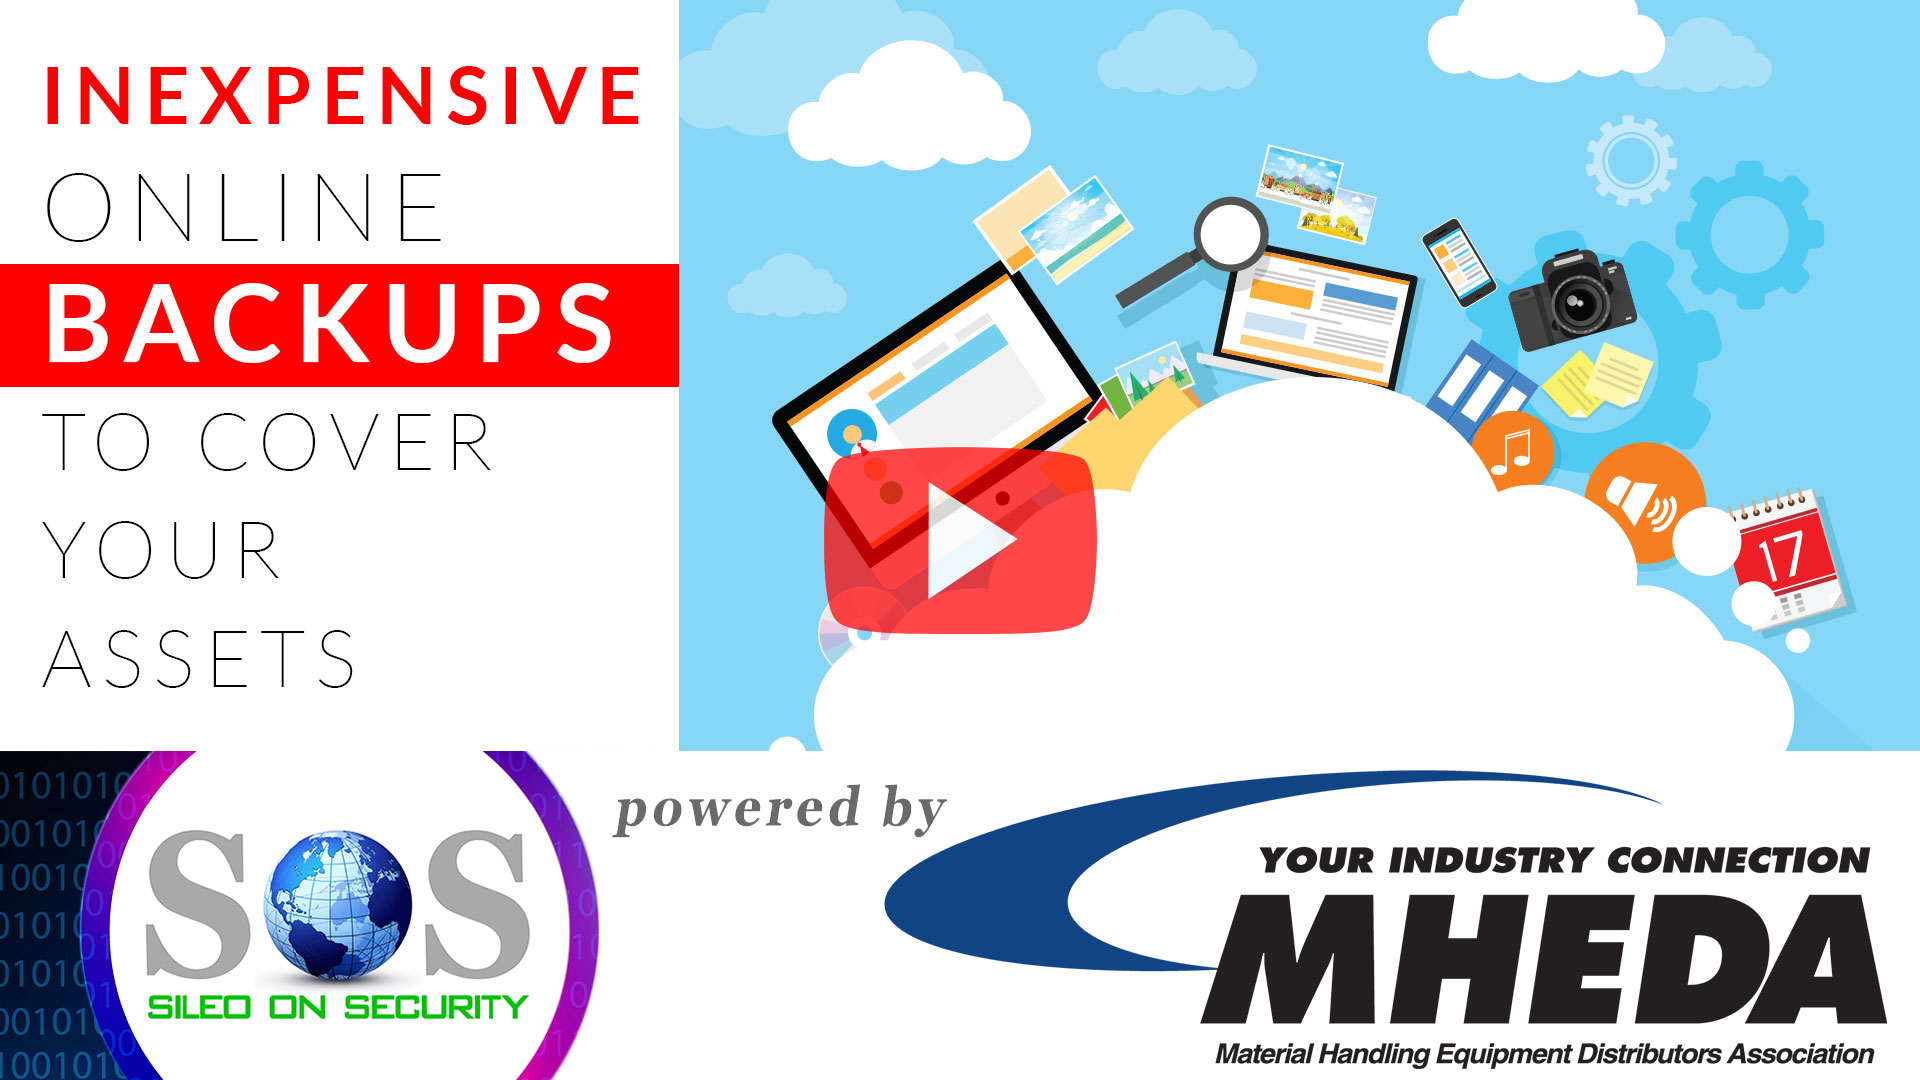 Inexpensive Online Backups to Cover Your Assets!